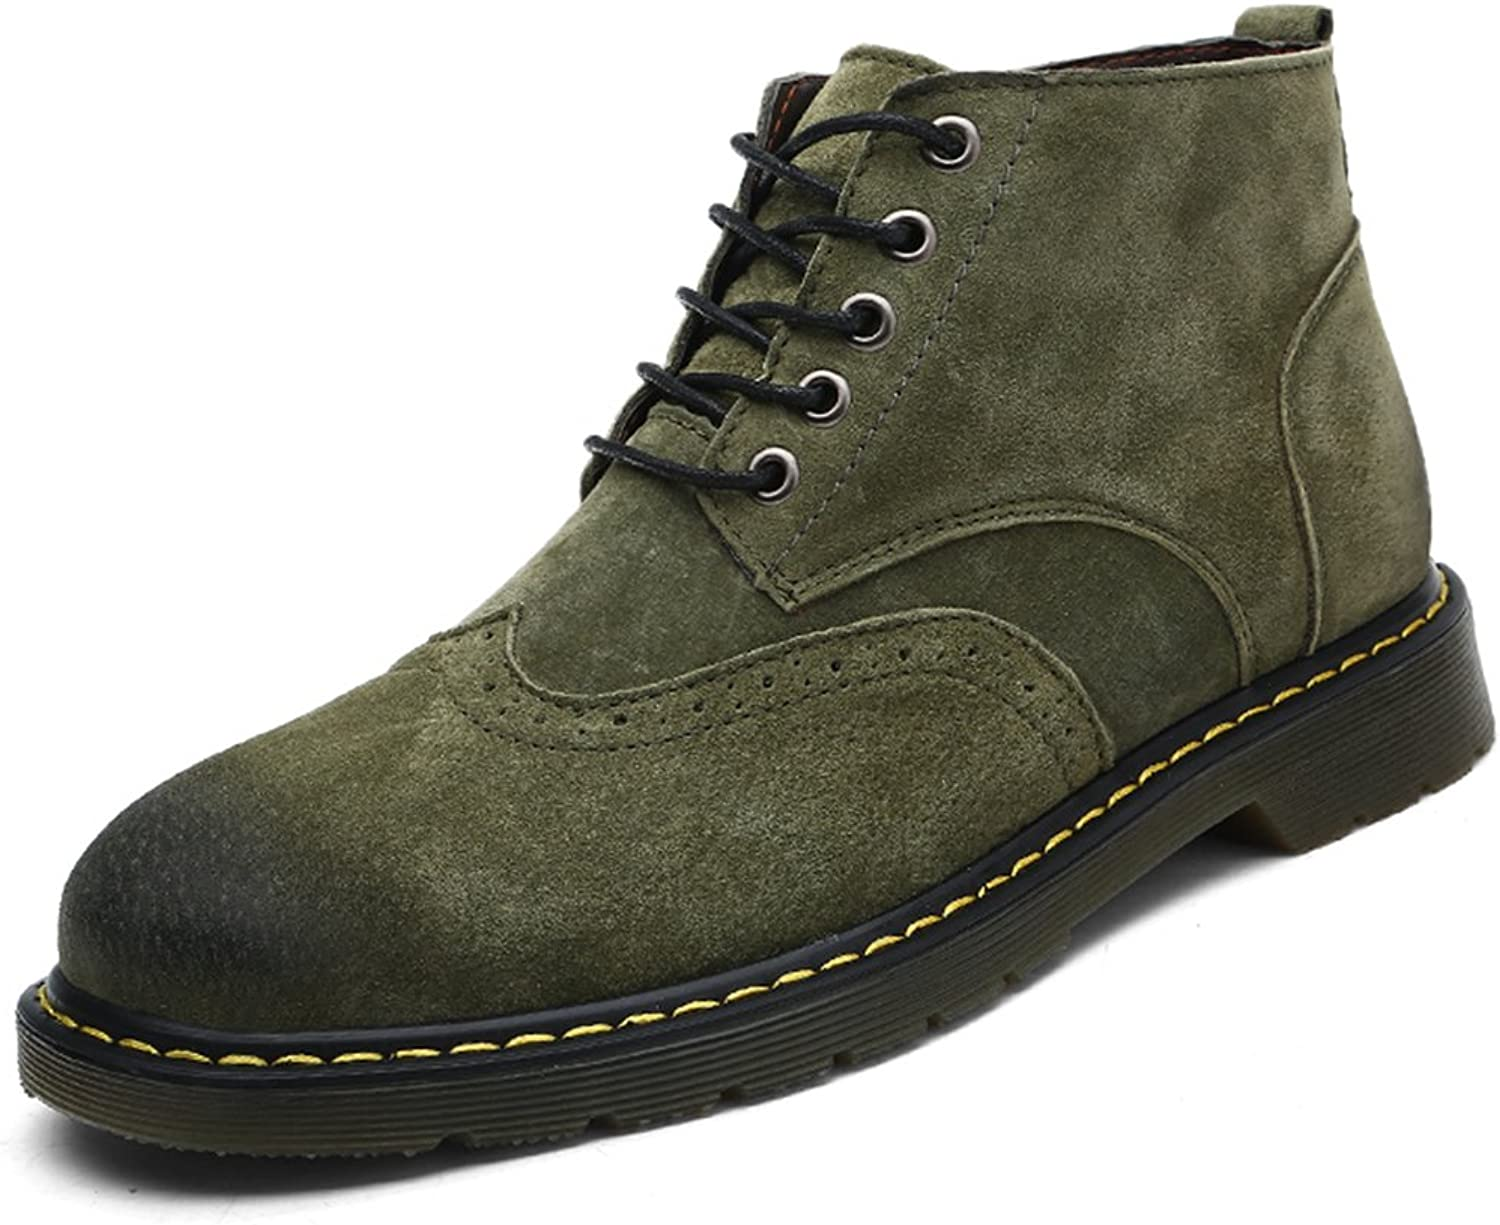 Go Tour Men's New Bloch Chukka Boot